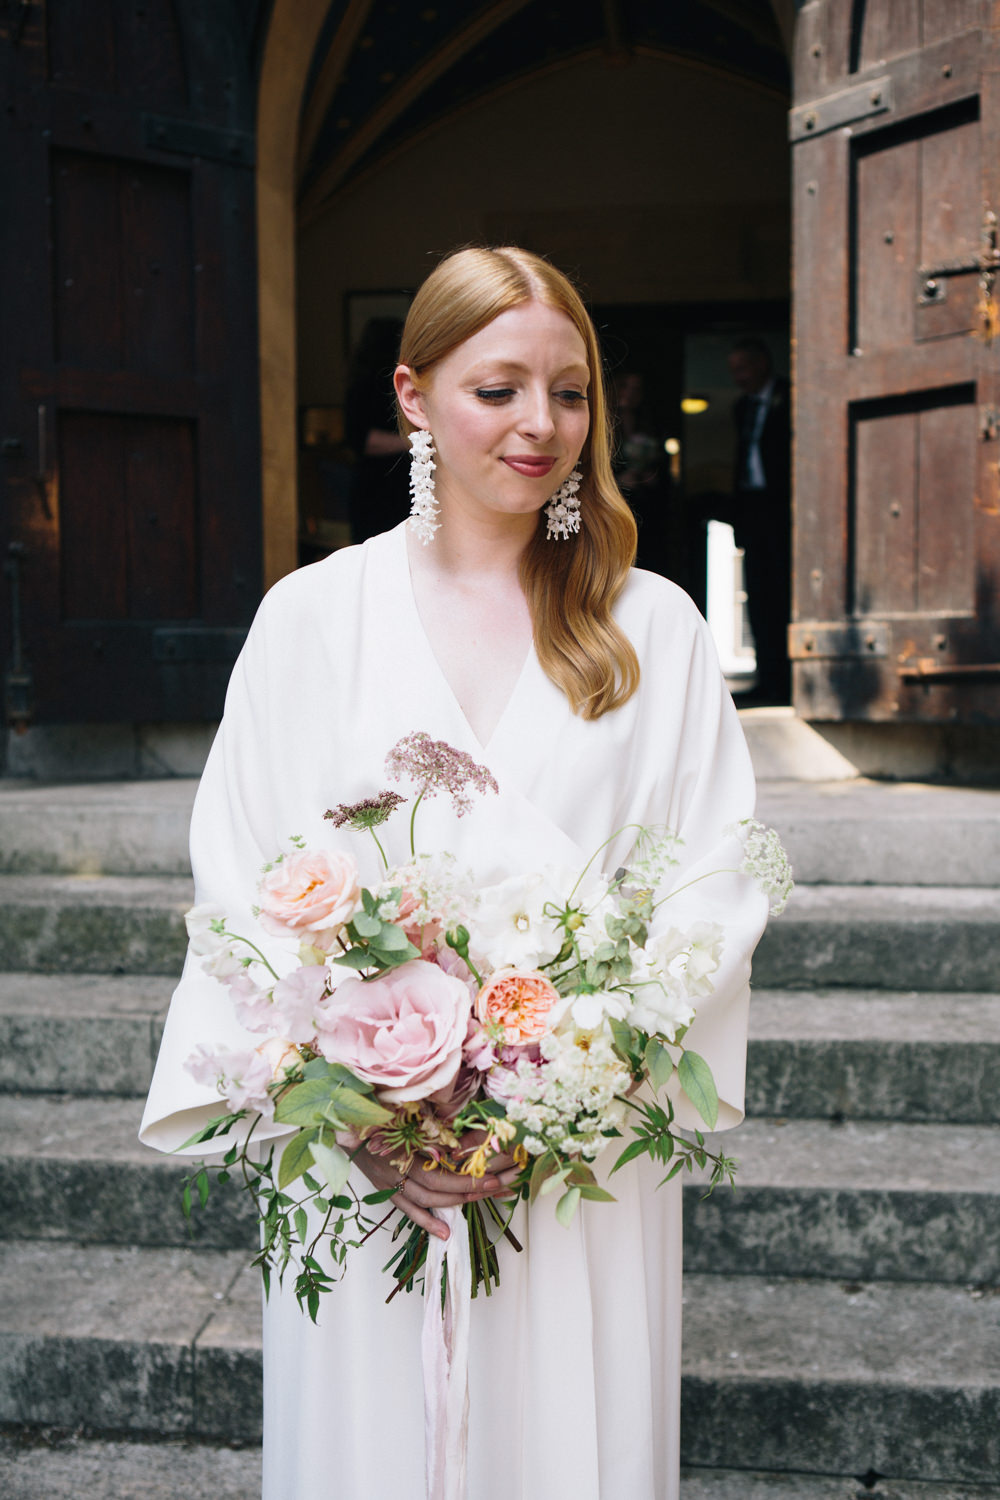 Bride Bridal Kimono Style Silk Dress Peach Pink Bouquet East London Leytonstone Wedding Robbins Photographic